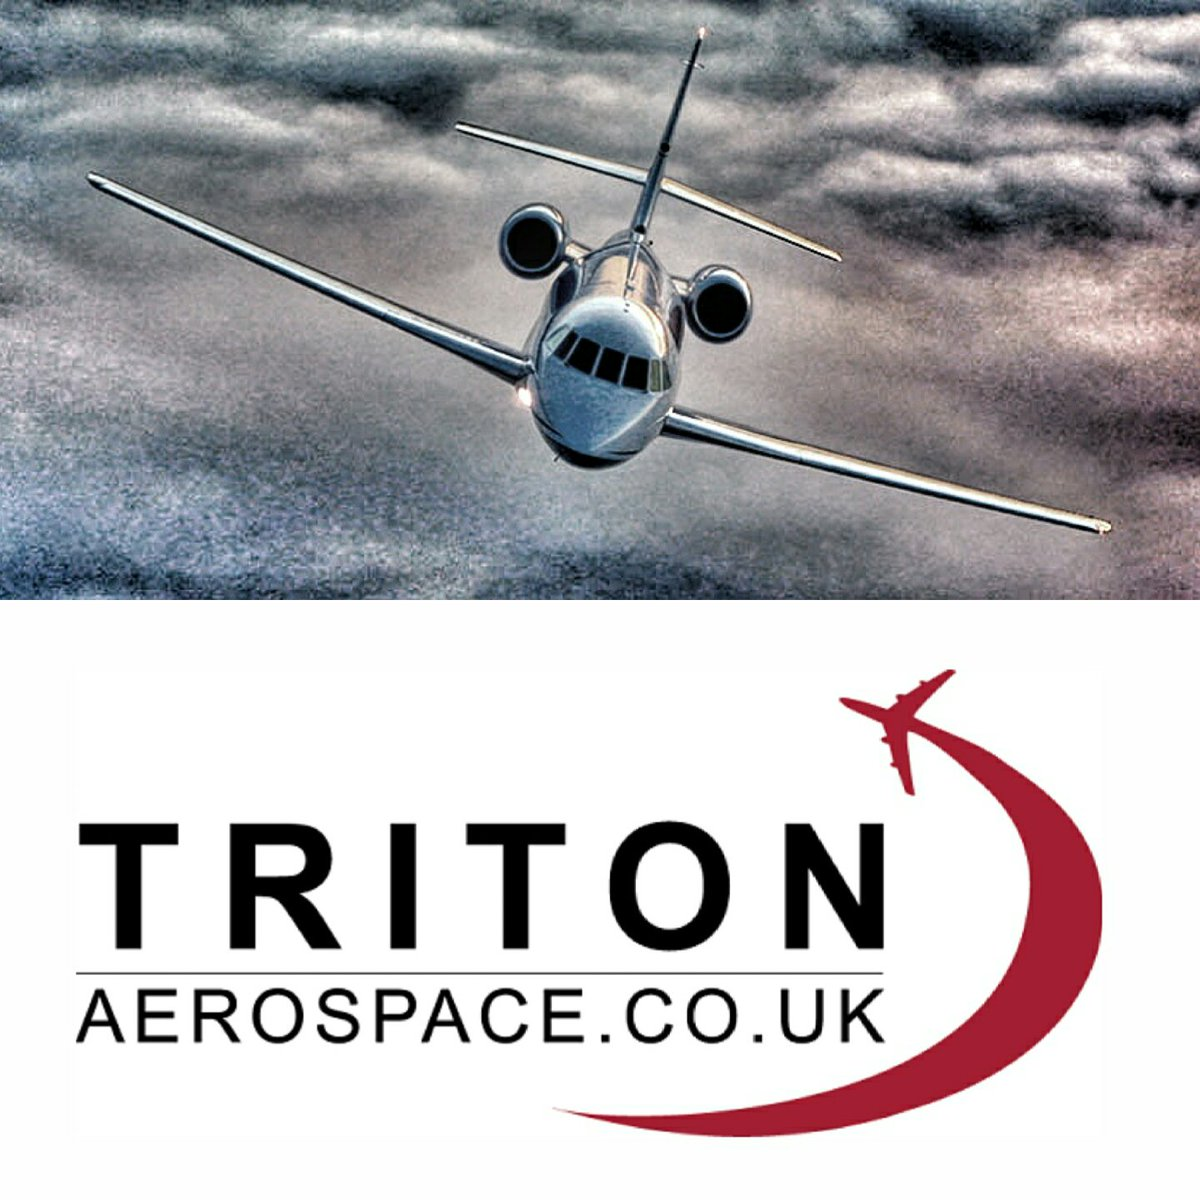 Looking to purchase or sell an #aircraft contact us  http://www. tritonaerospace.com  &nbsp;   #luxury #Travel #Flight #VIP #Jet #bizav #planes #aviation #Jets<br>http://pic.twitter.com/2twIY7c8kZ